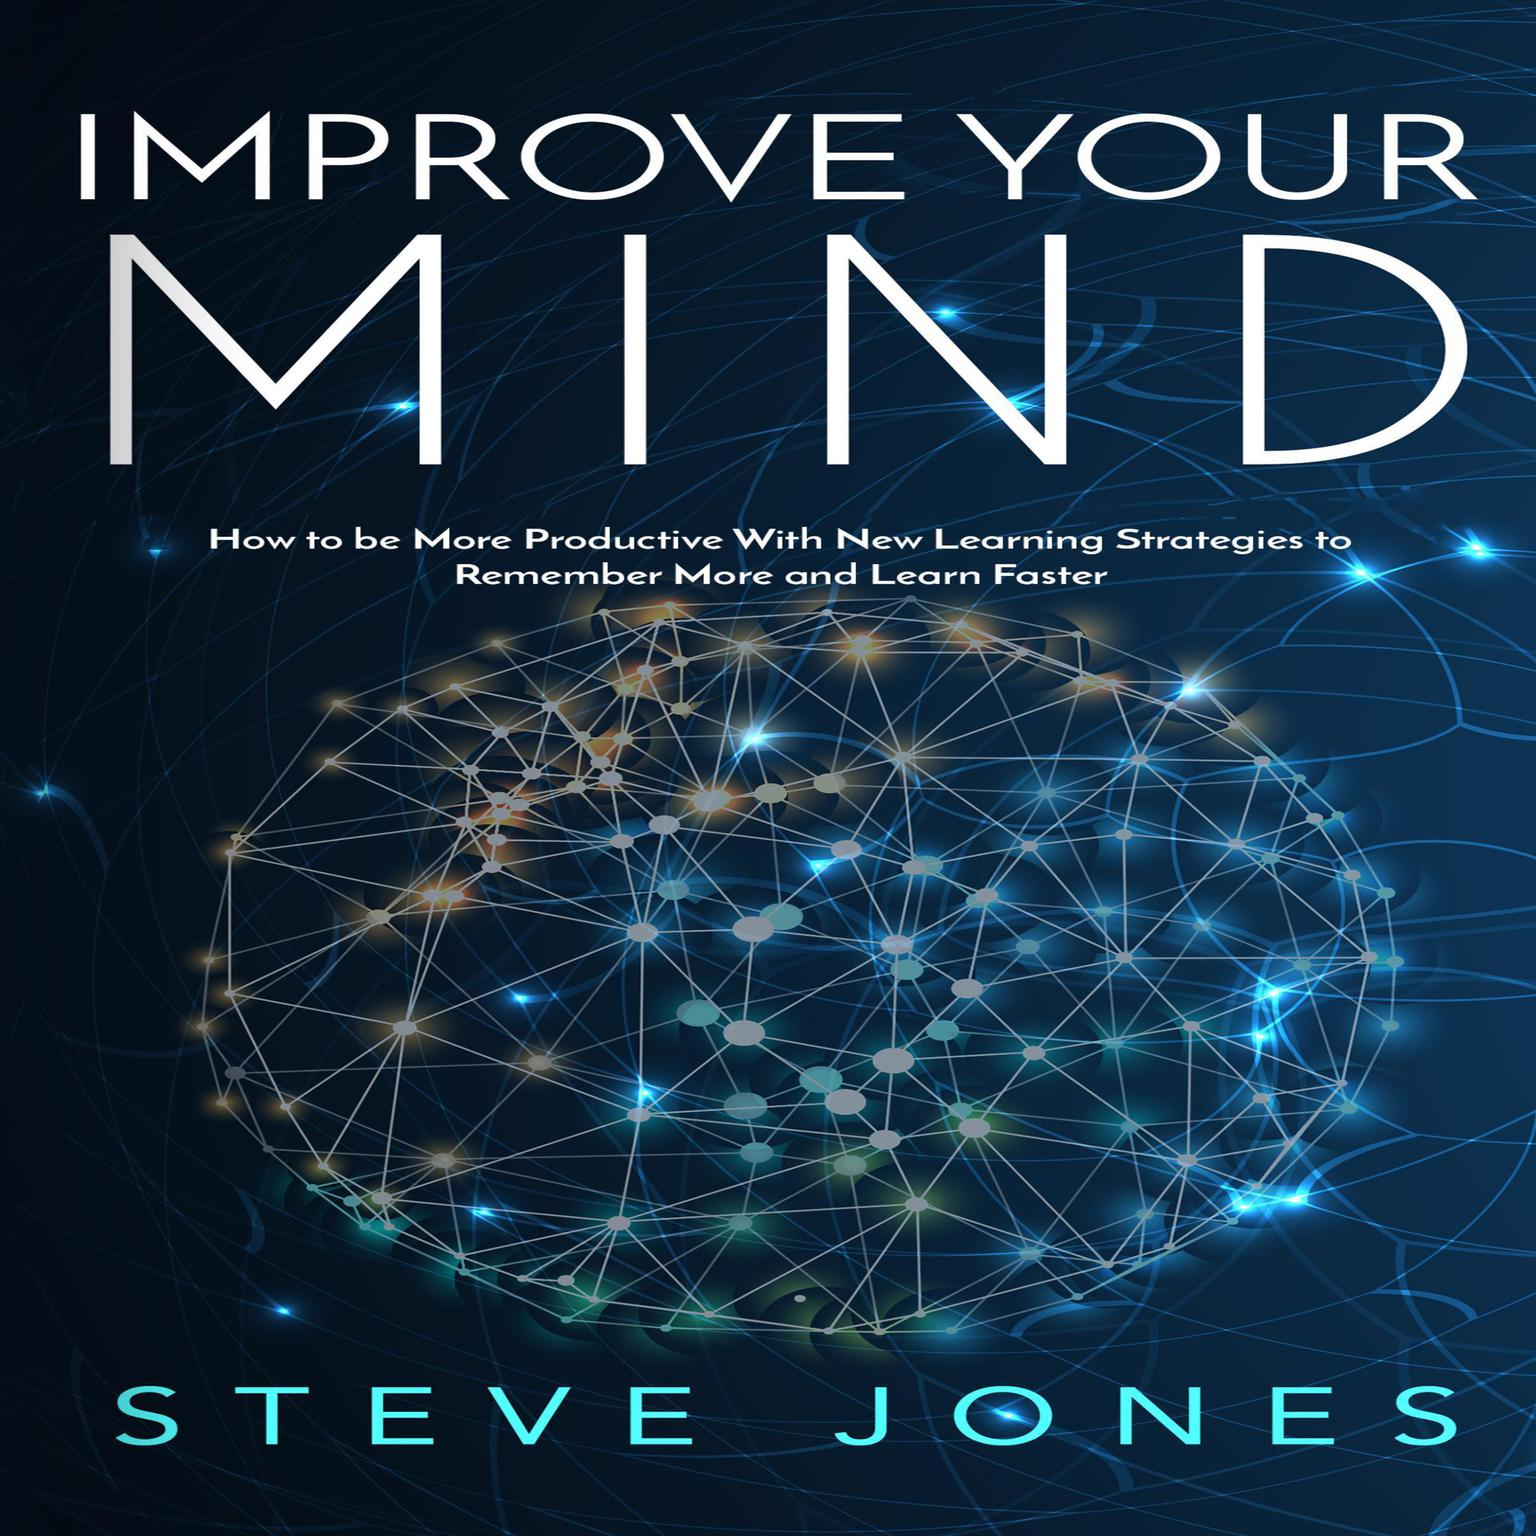 Improve Your Mind; How to be More Productive With New Learning Strategies to Remember More and Learn Faster   Audiobook, by Steve Jones